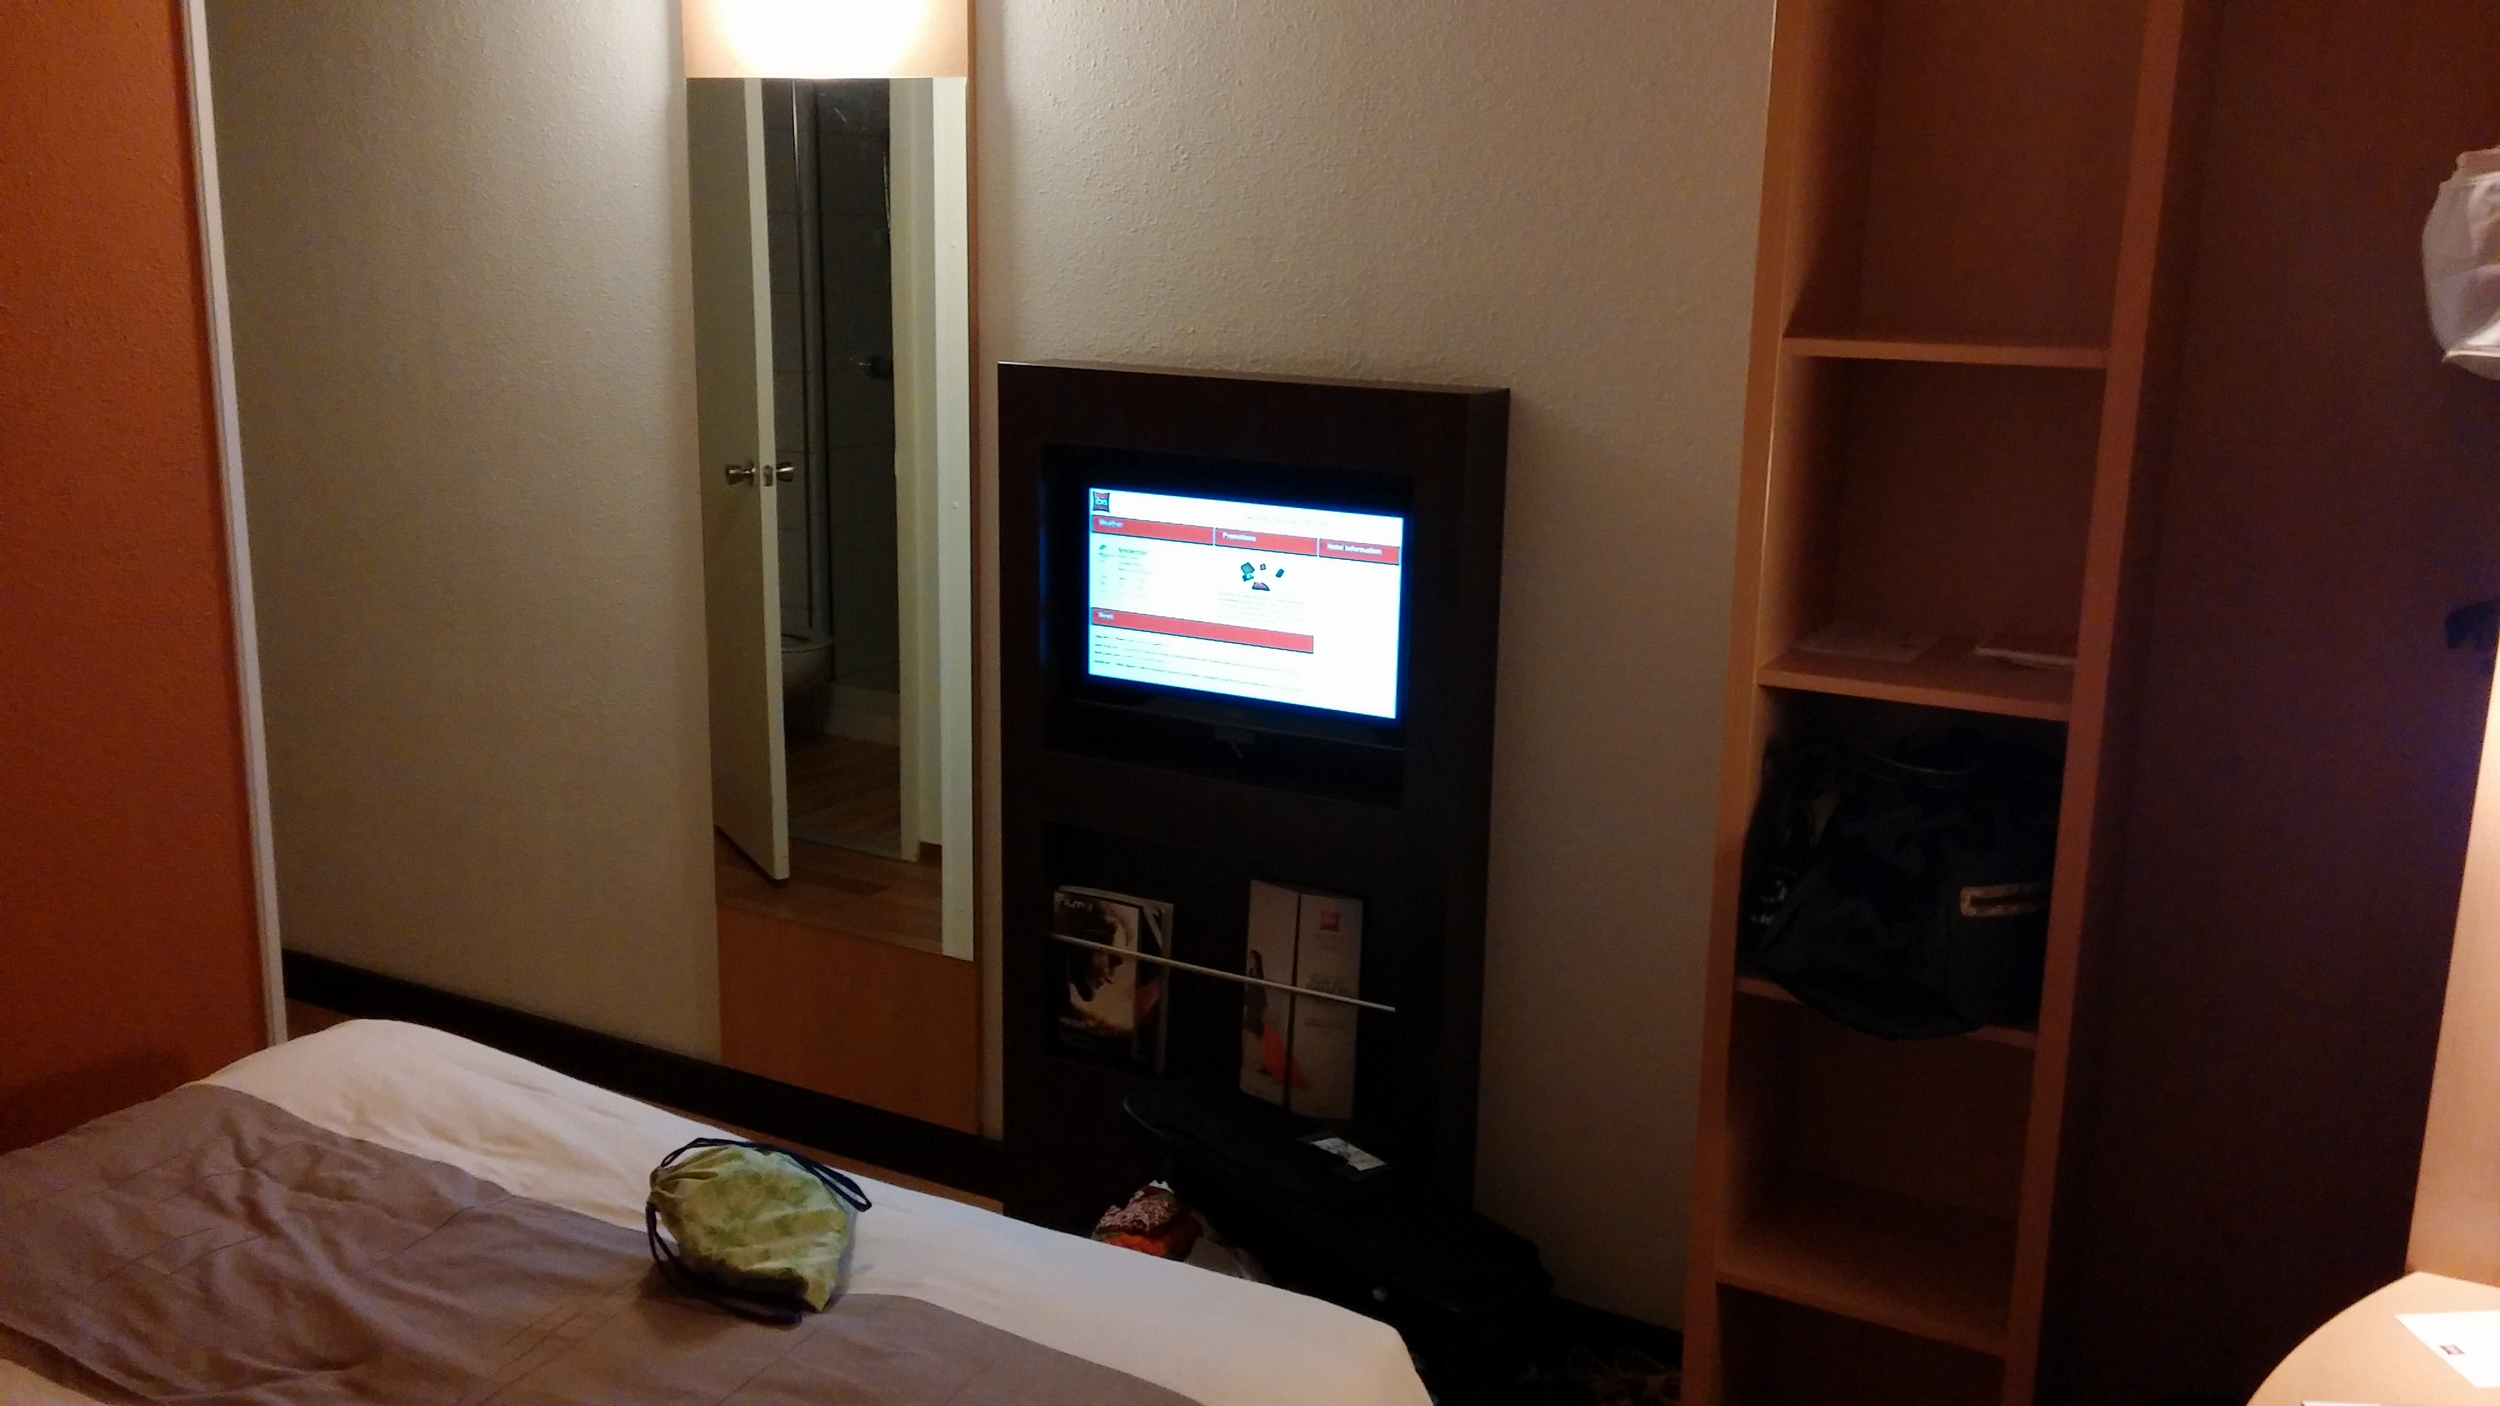 My super nice room at the hotel in Amsterdam